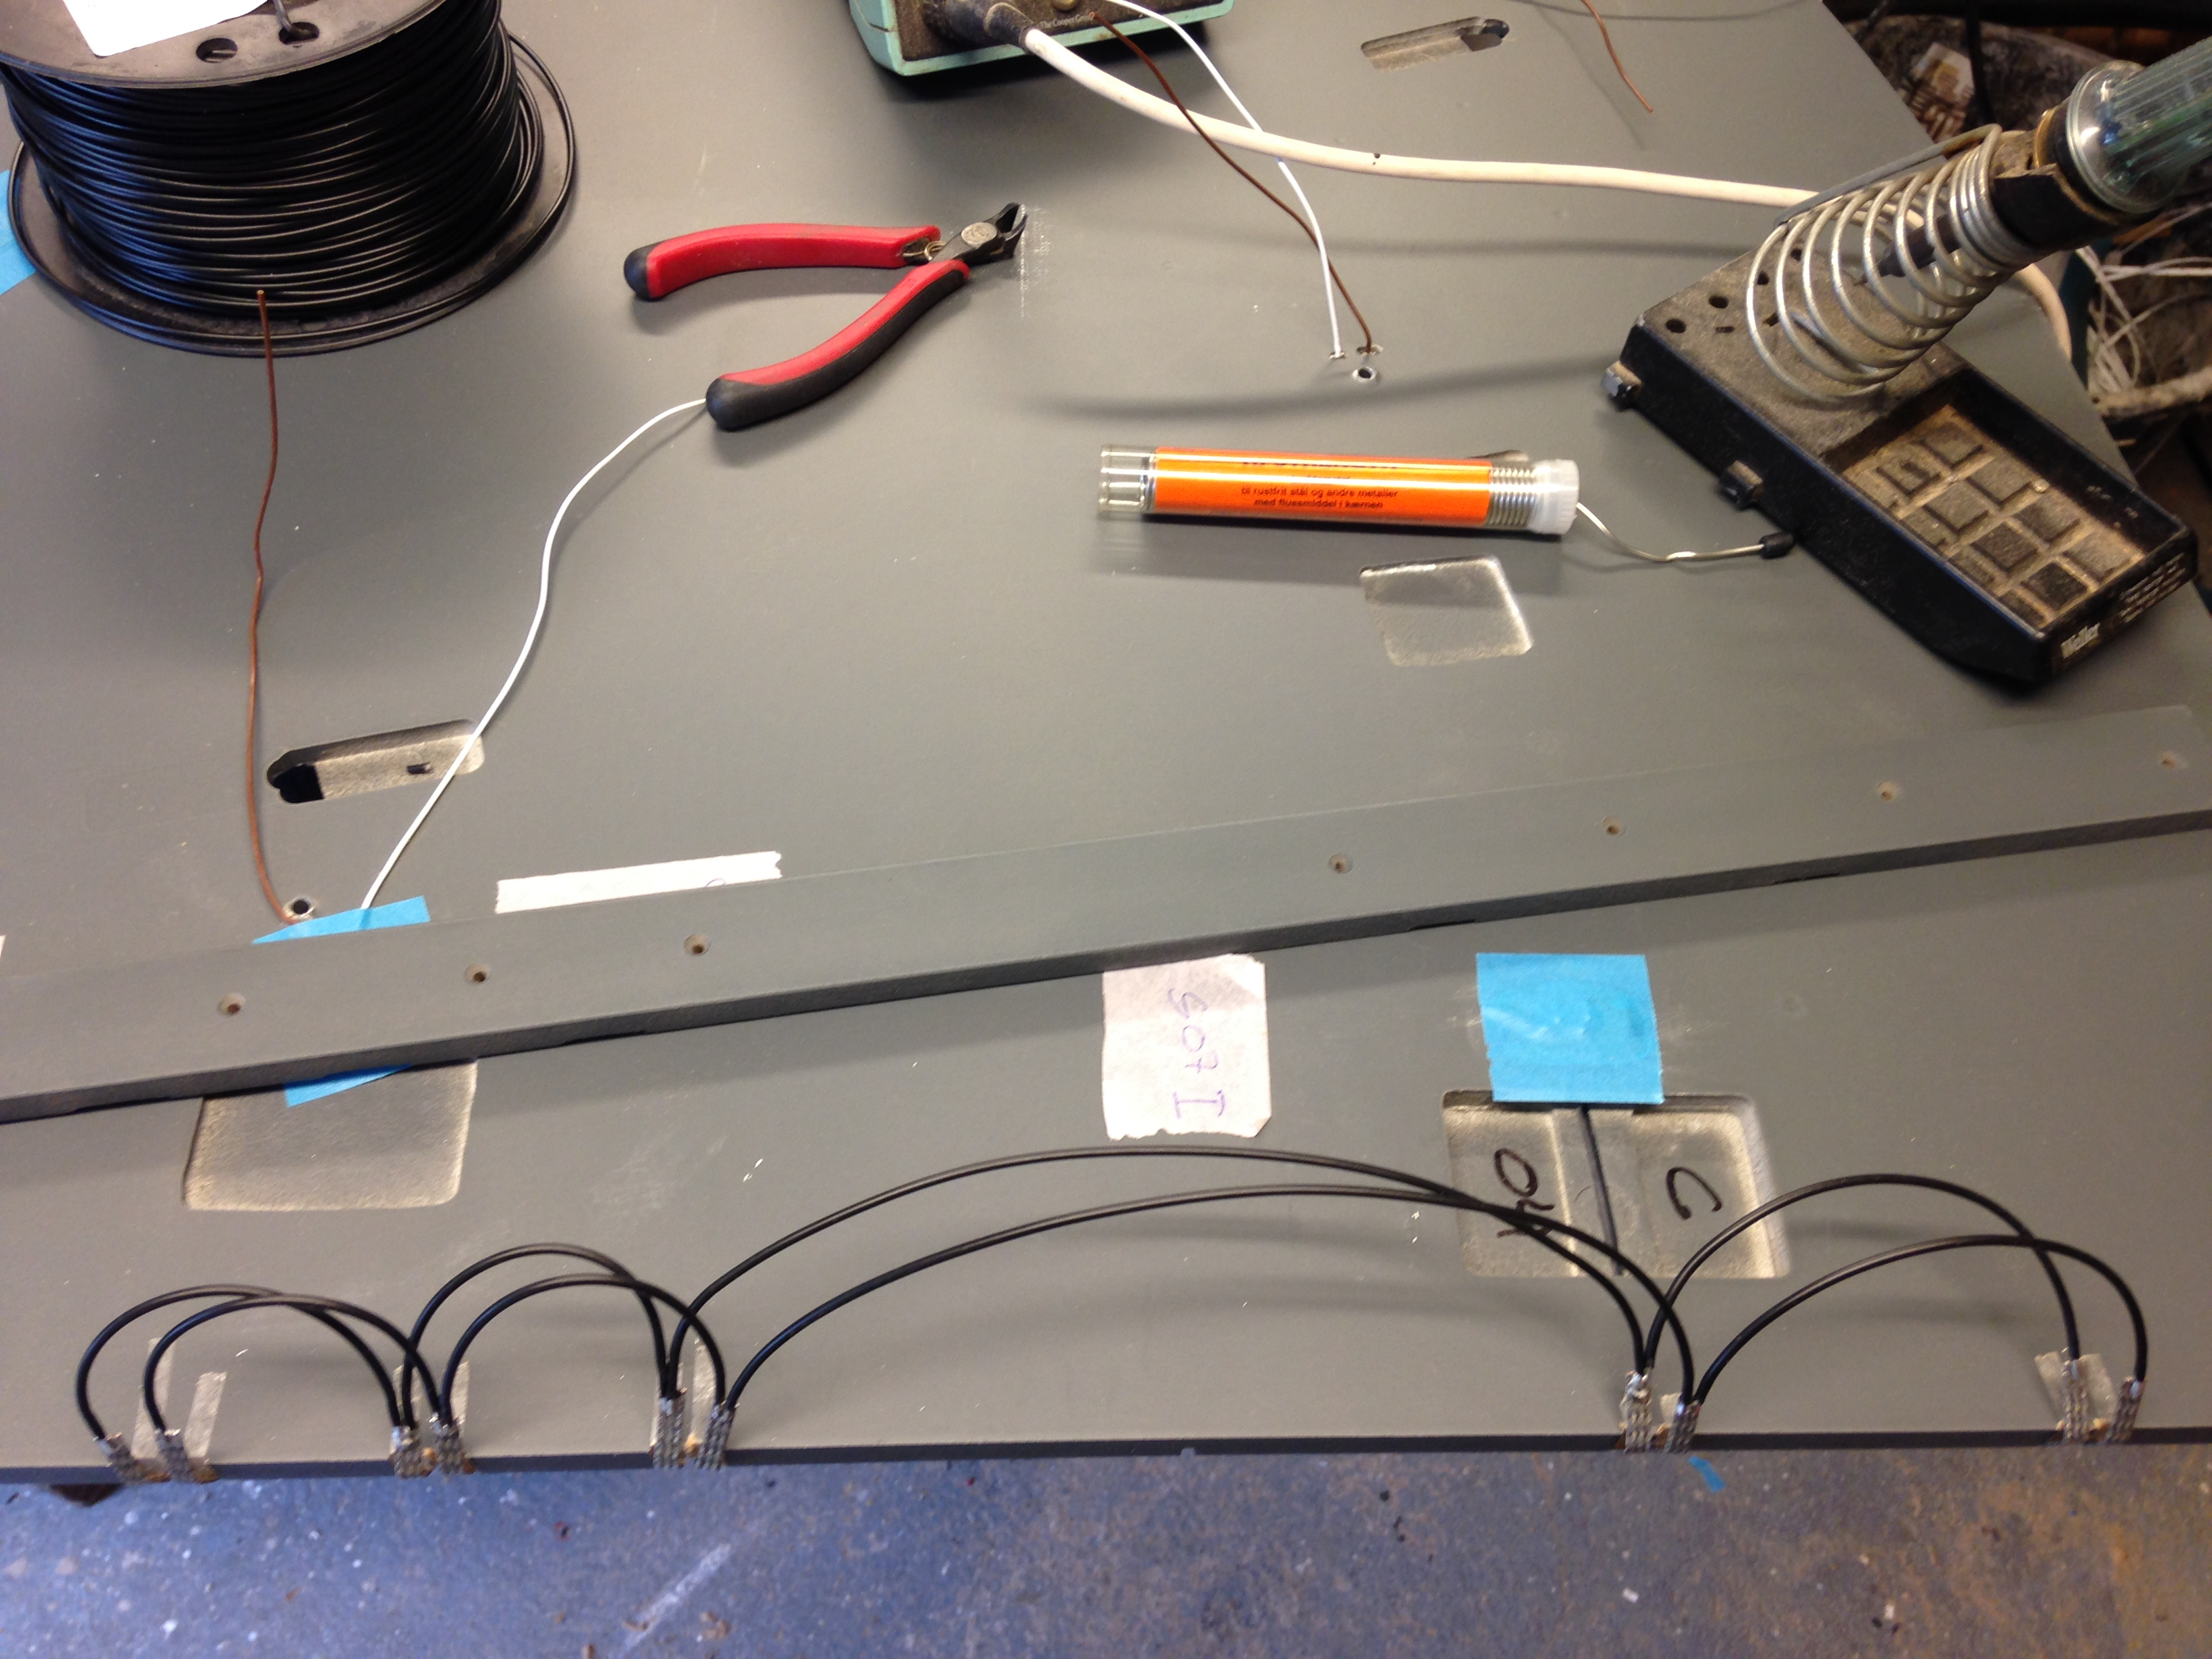 Braid Gt 40 Raceway Slot Car Track Wiring Painted And Ready To Assemble